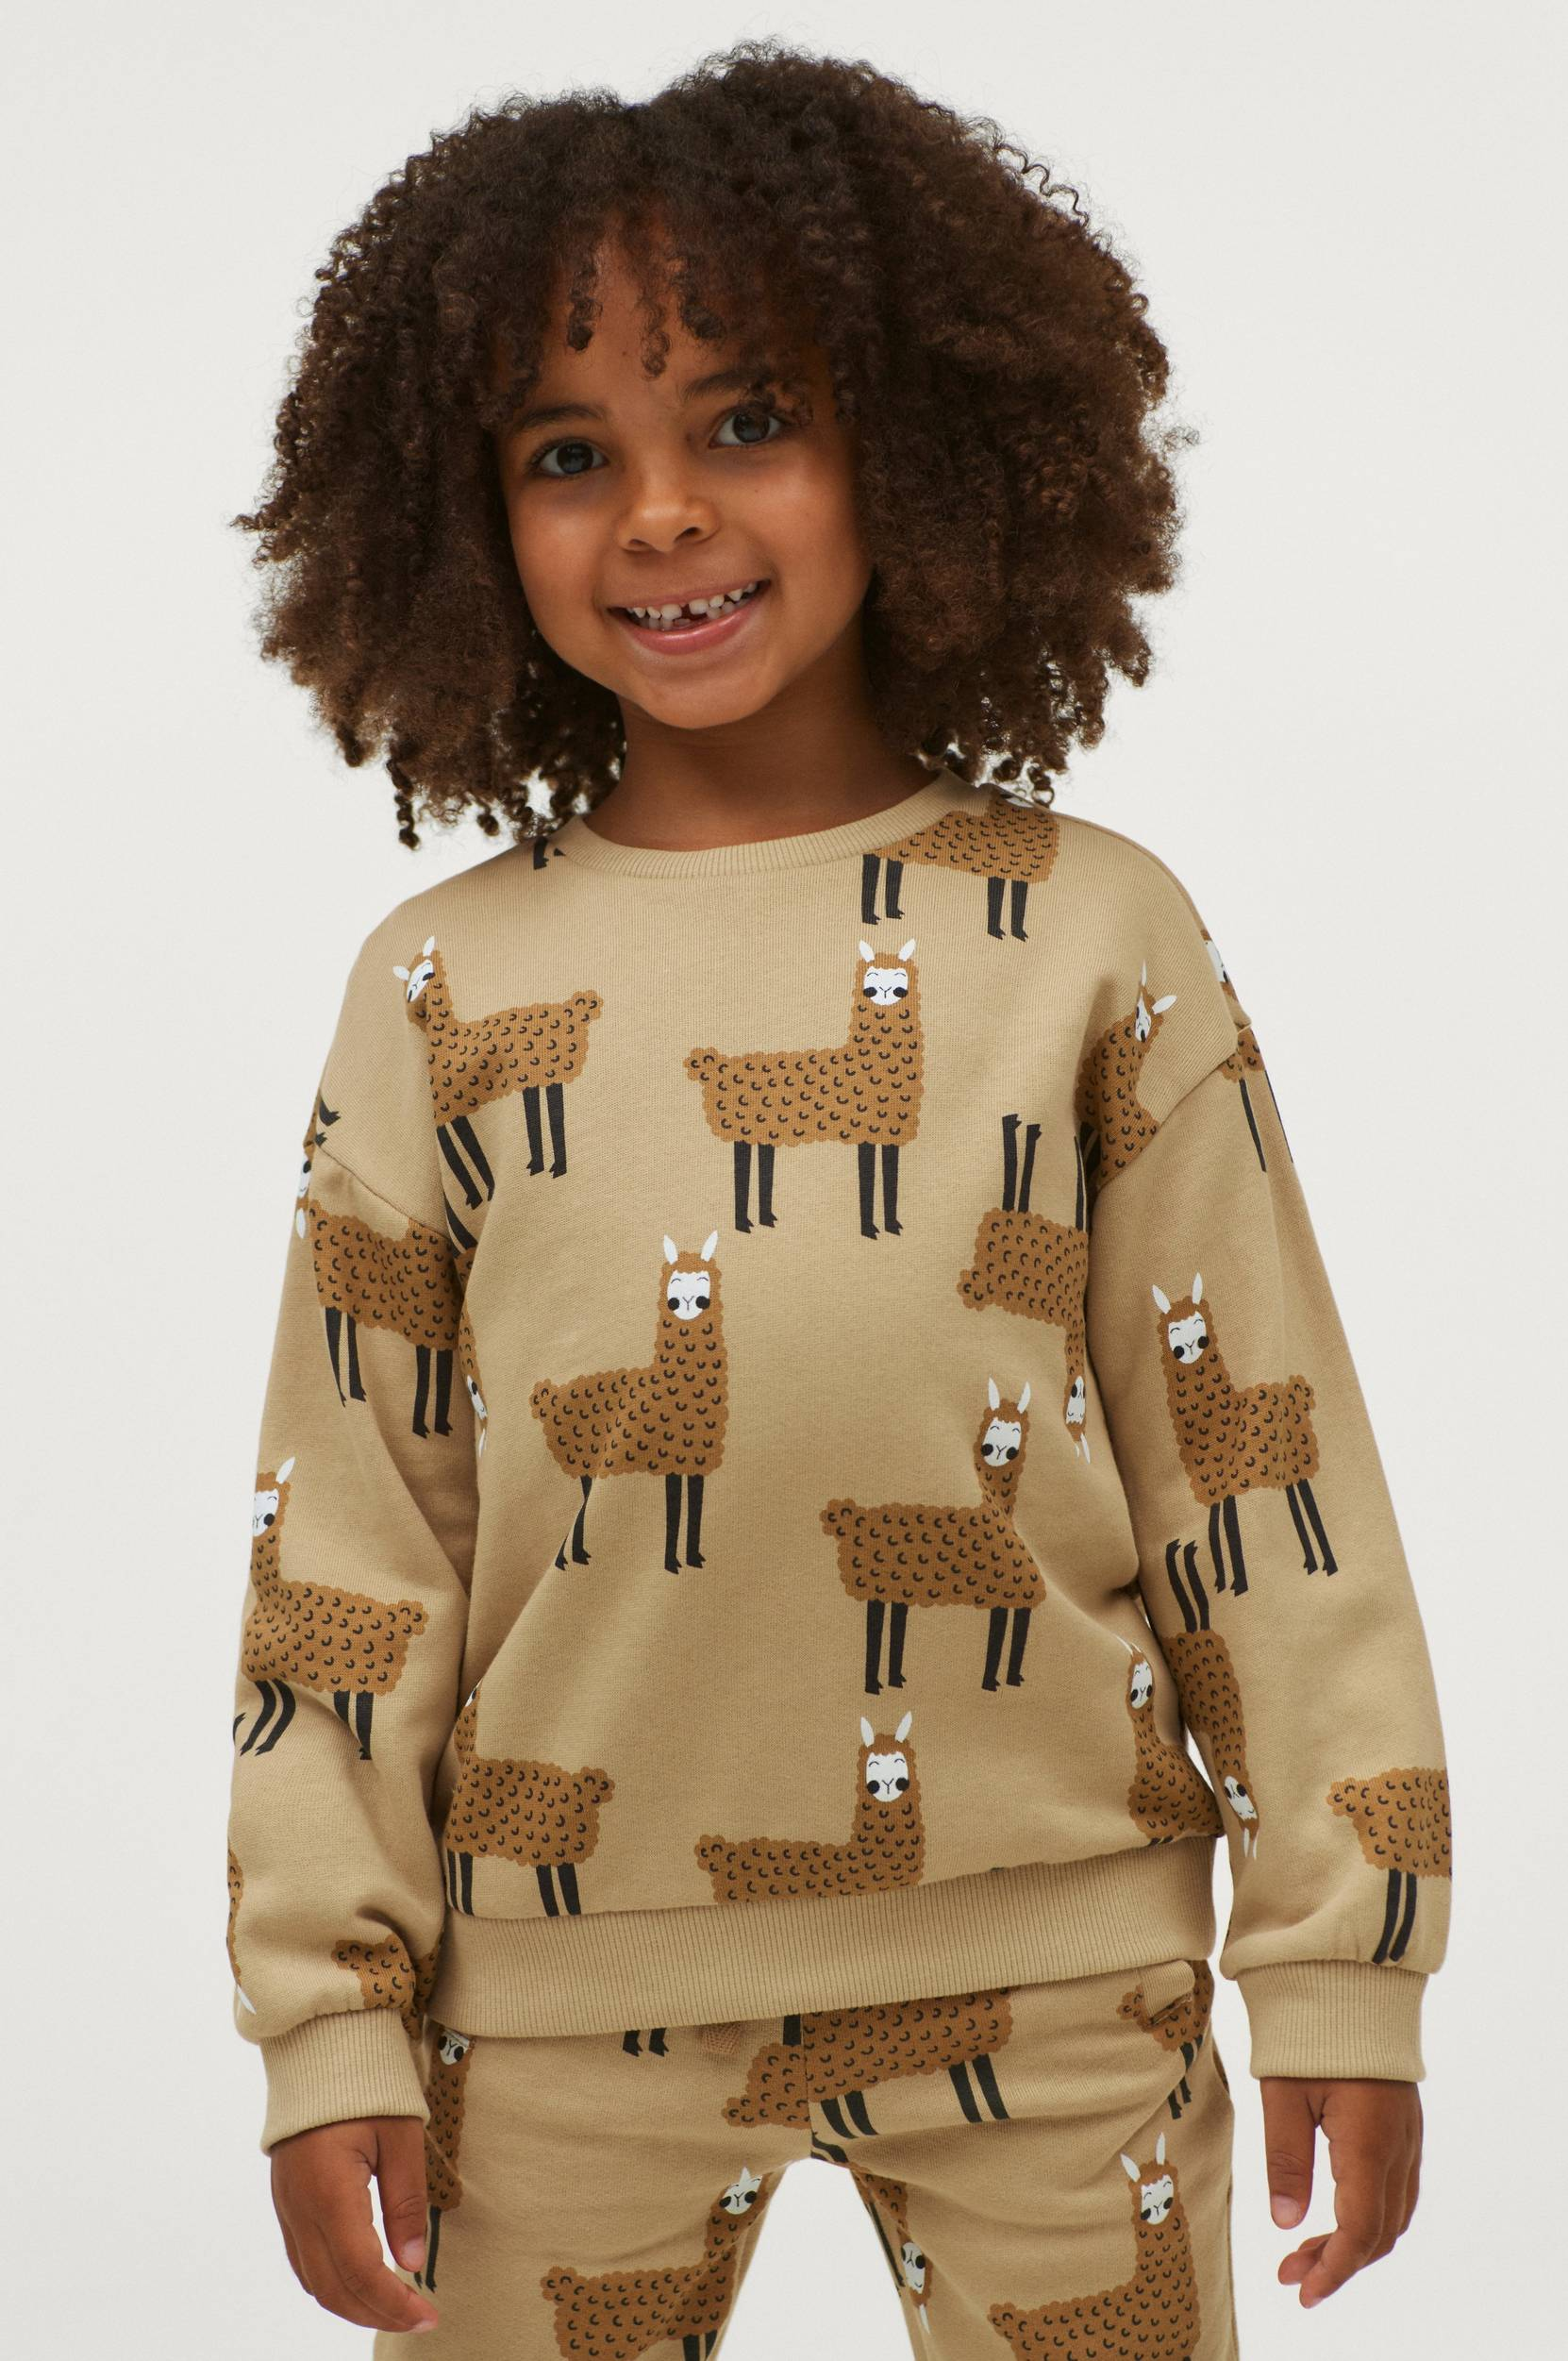 Milly & Willy - Sweatshirt Marley - Natur